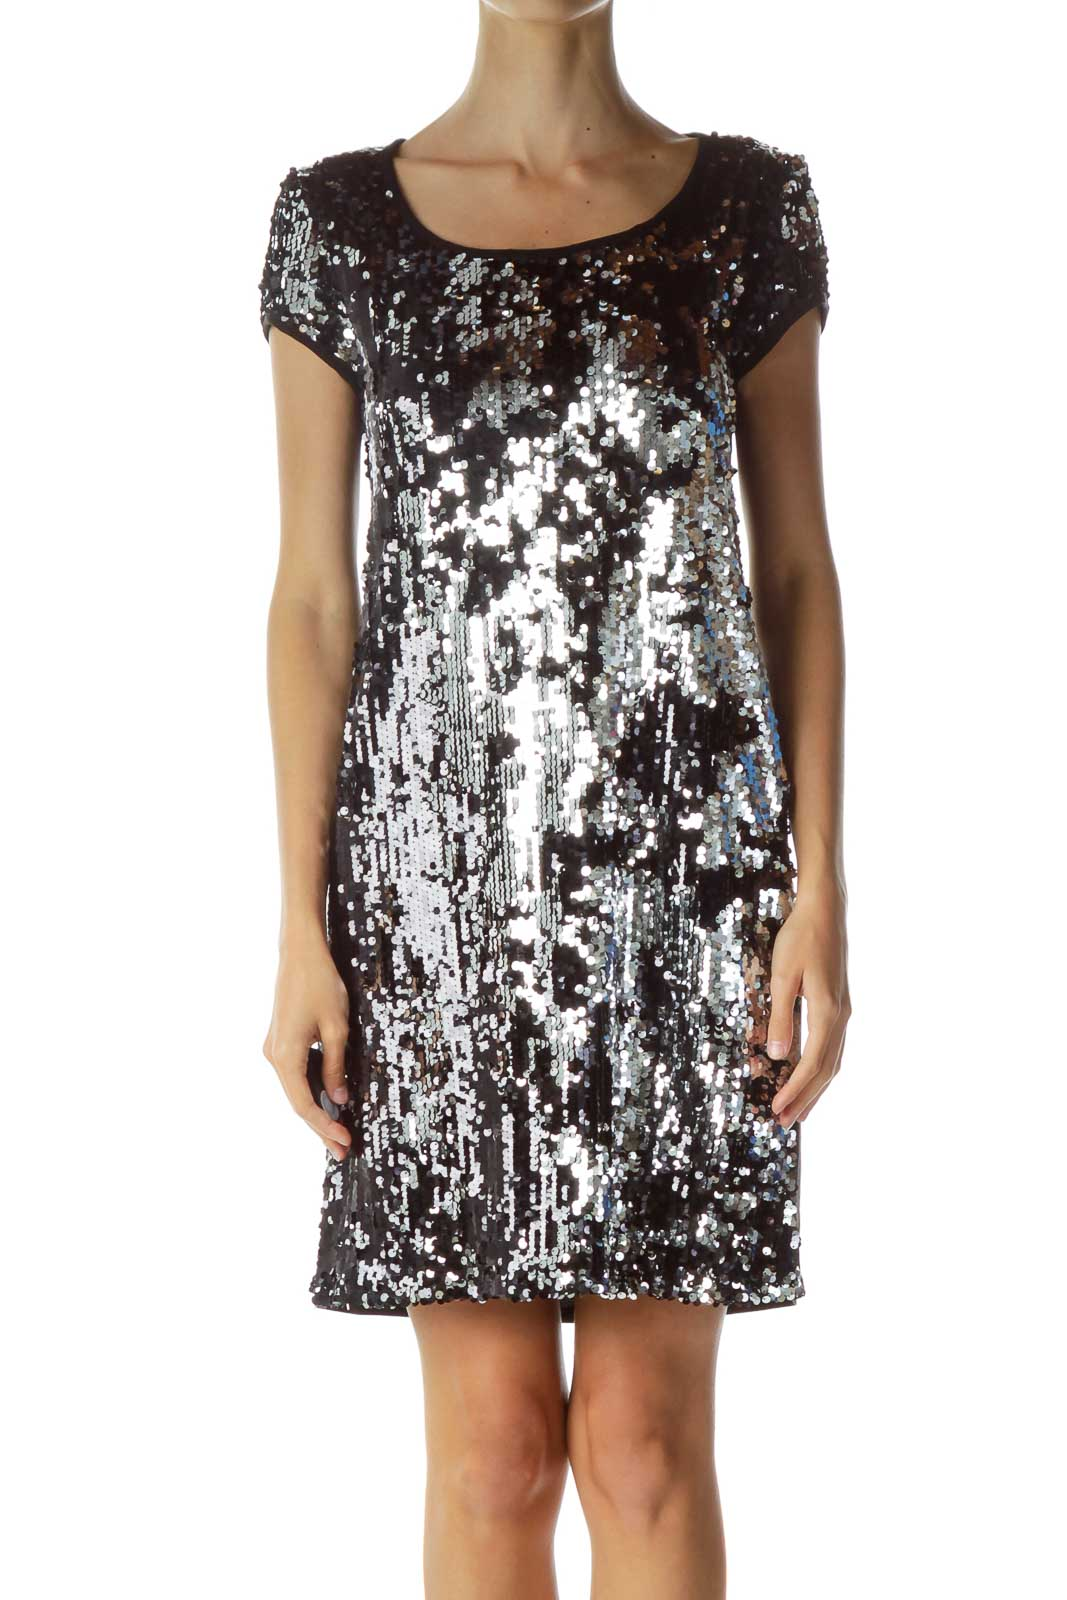 Black Silver Sequined Cocktail Dress